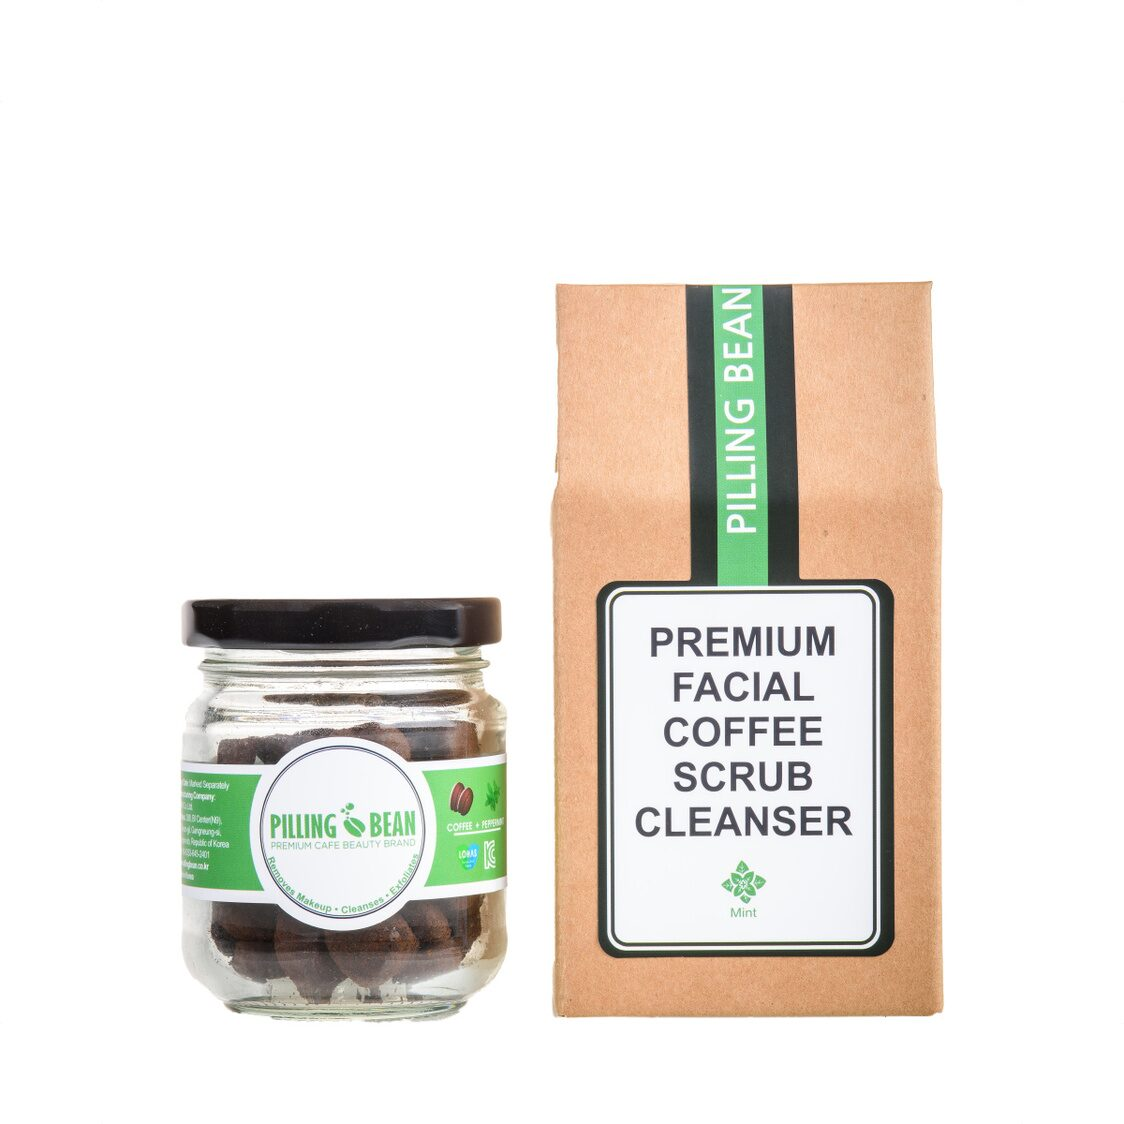 Facial Coffee Scrub Cleanser 50g Mint